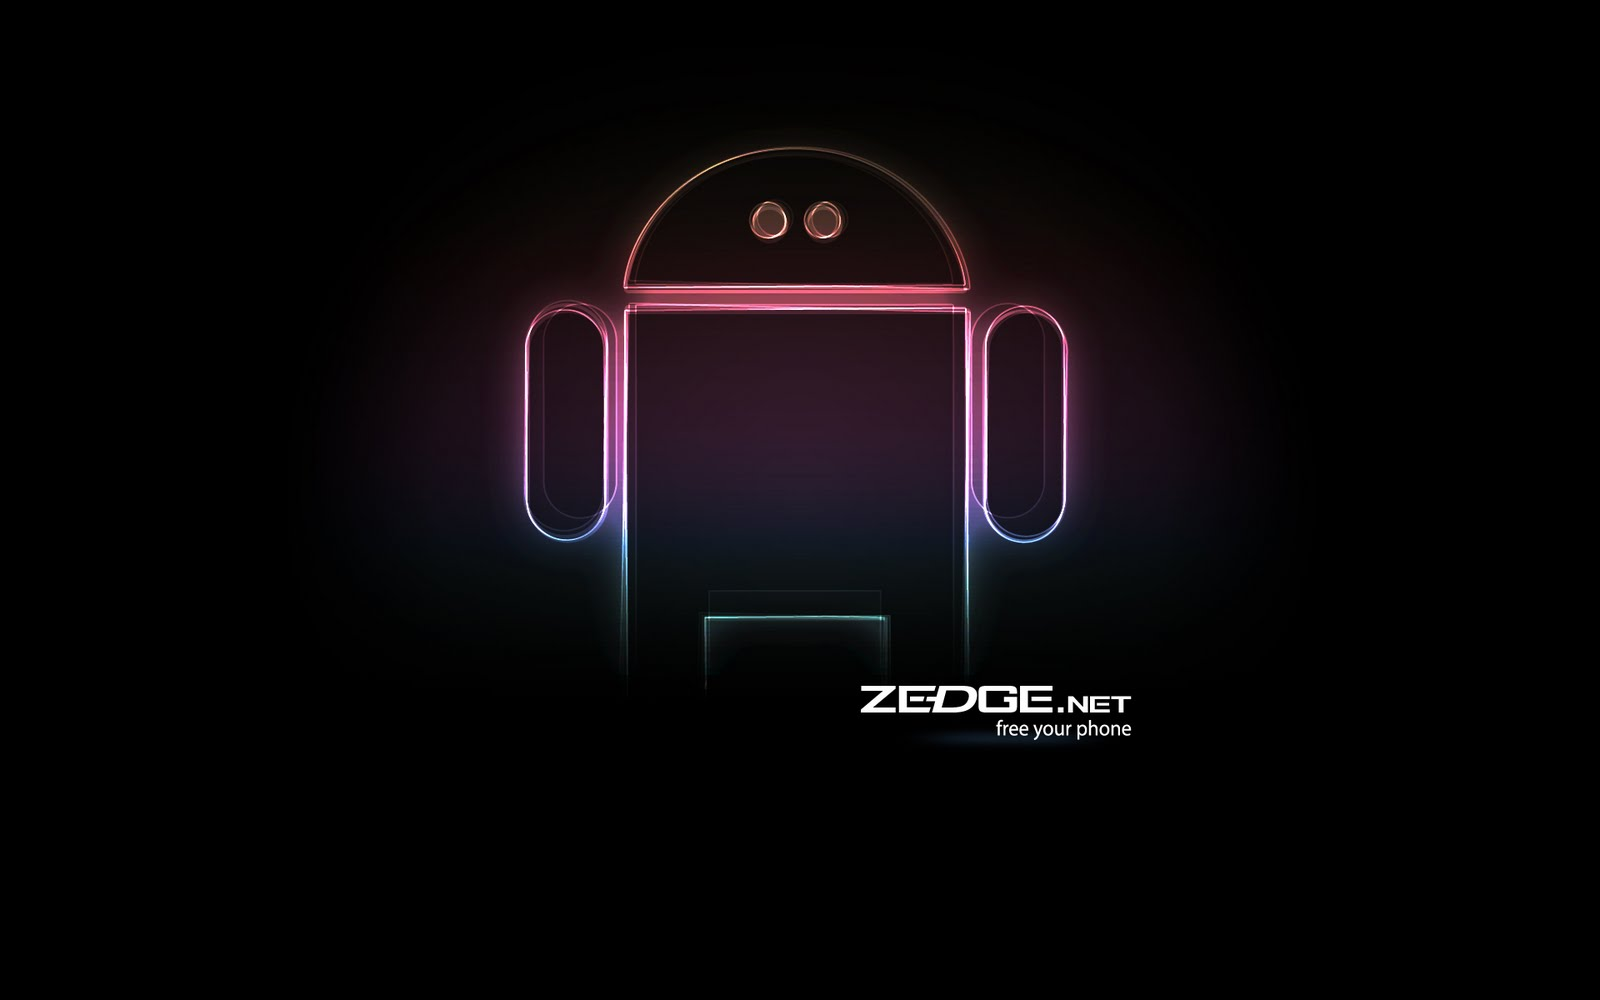 Zedge Logo Wallpapers Zedge  1